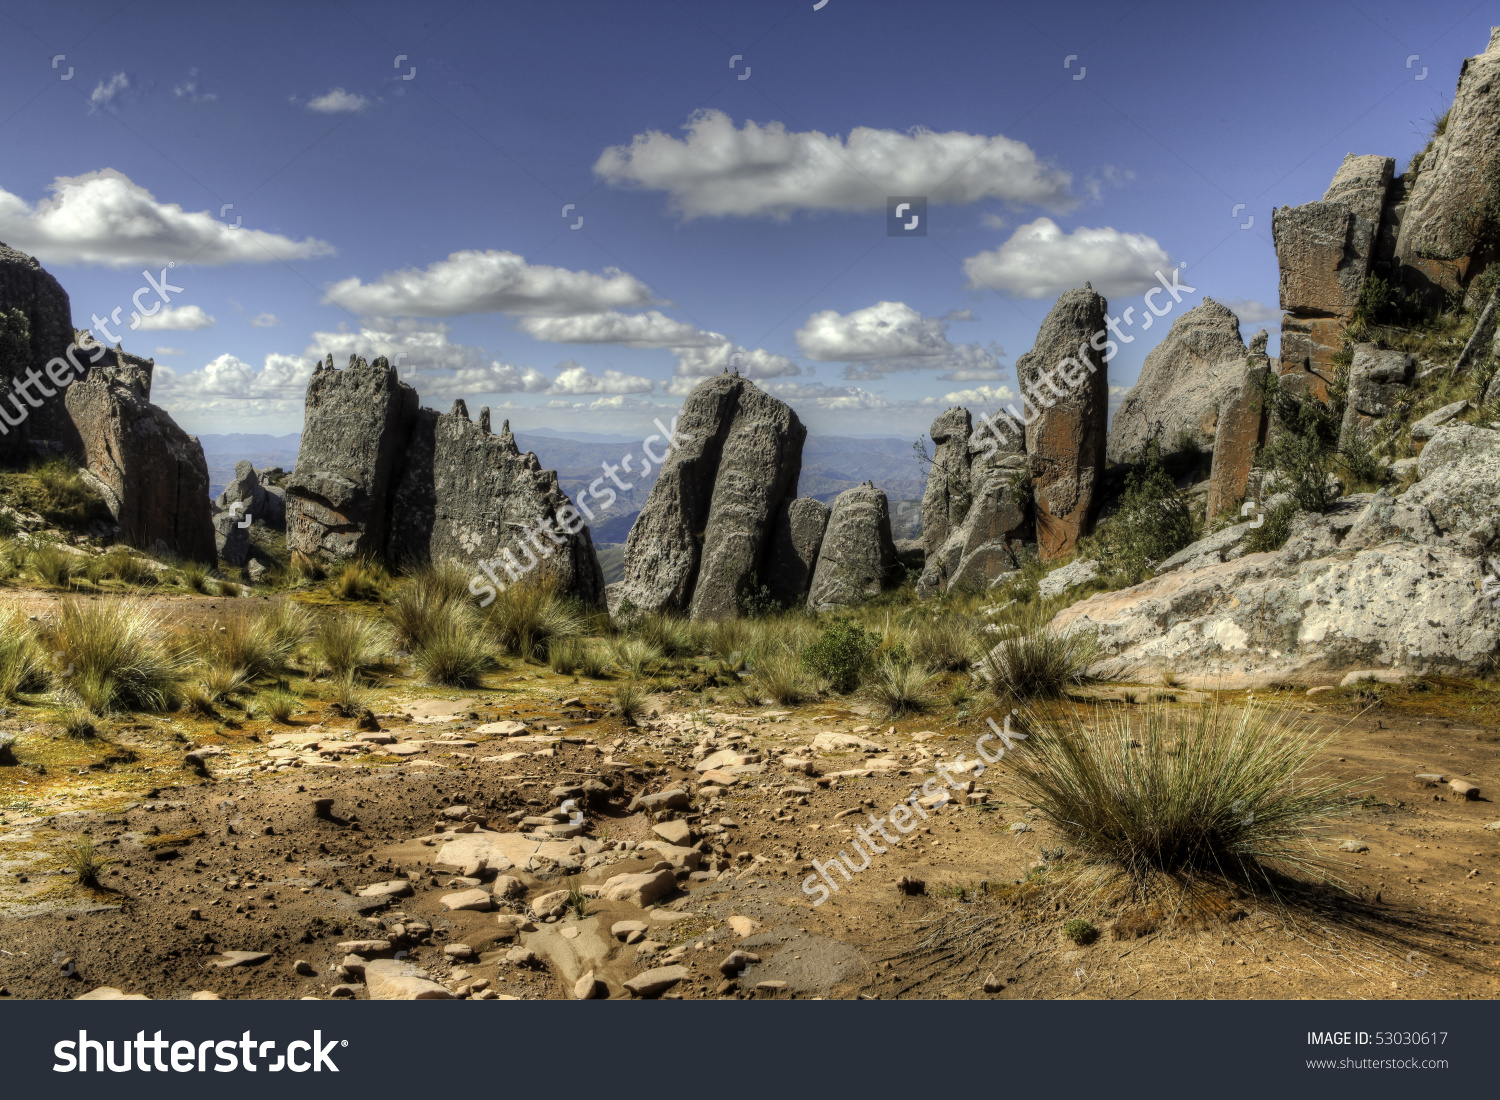 Andes Scenic Landscape Beautiful Blue Sky Stock Photo 53030617.